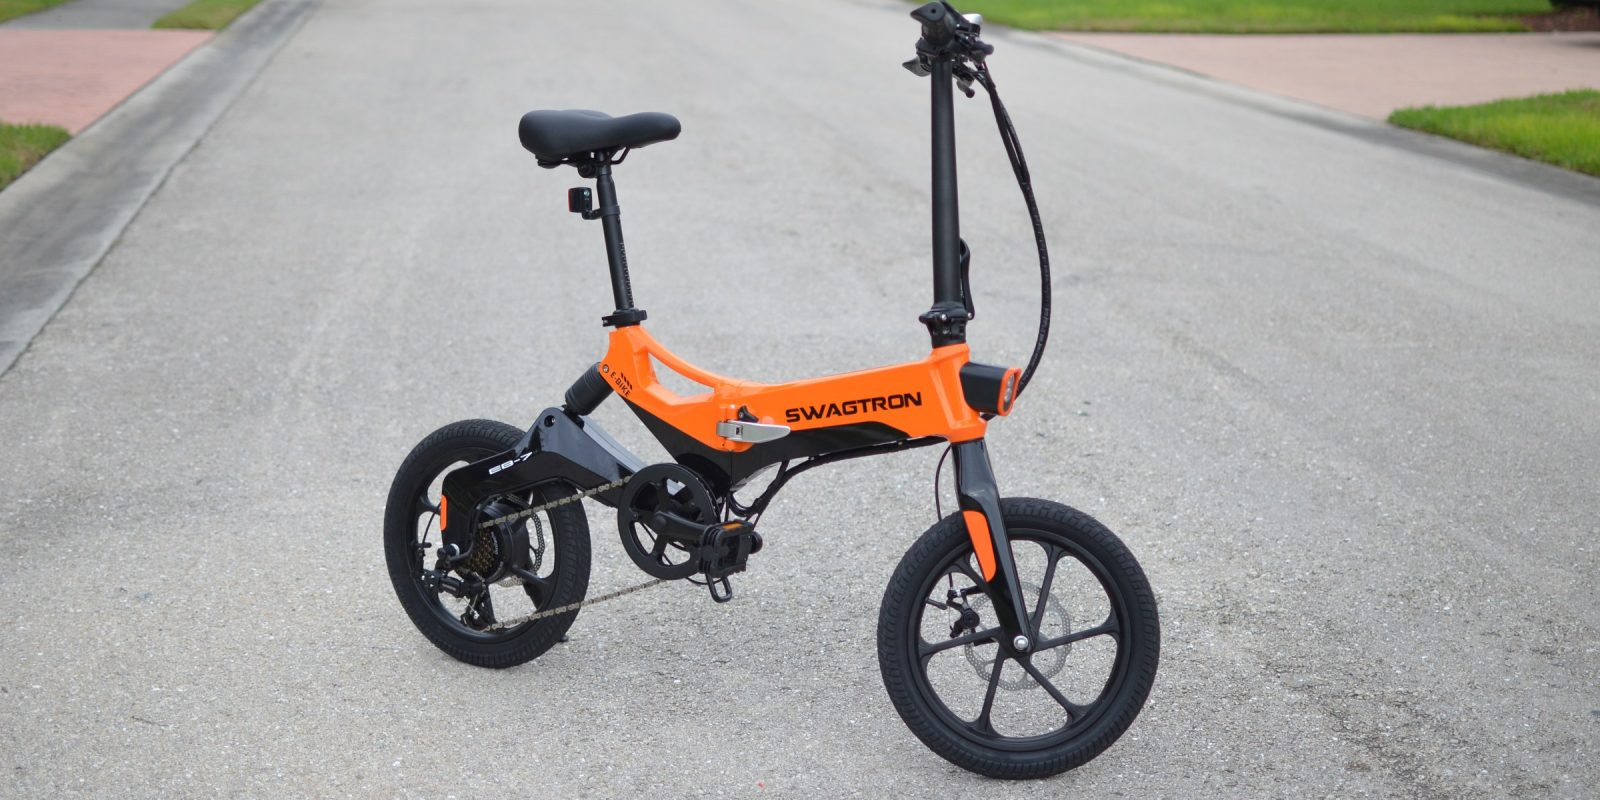 Review: Swagtron's $699 EB7 Plus electric bike is ready for the urban jungle